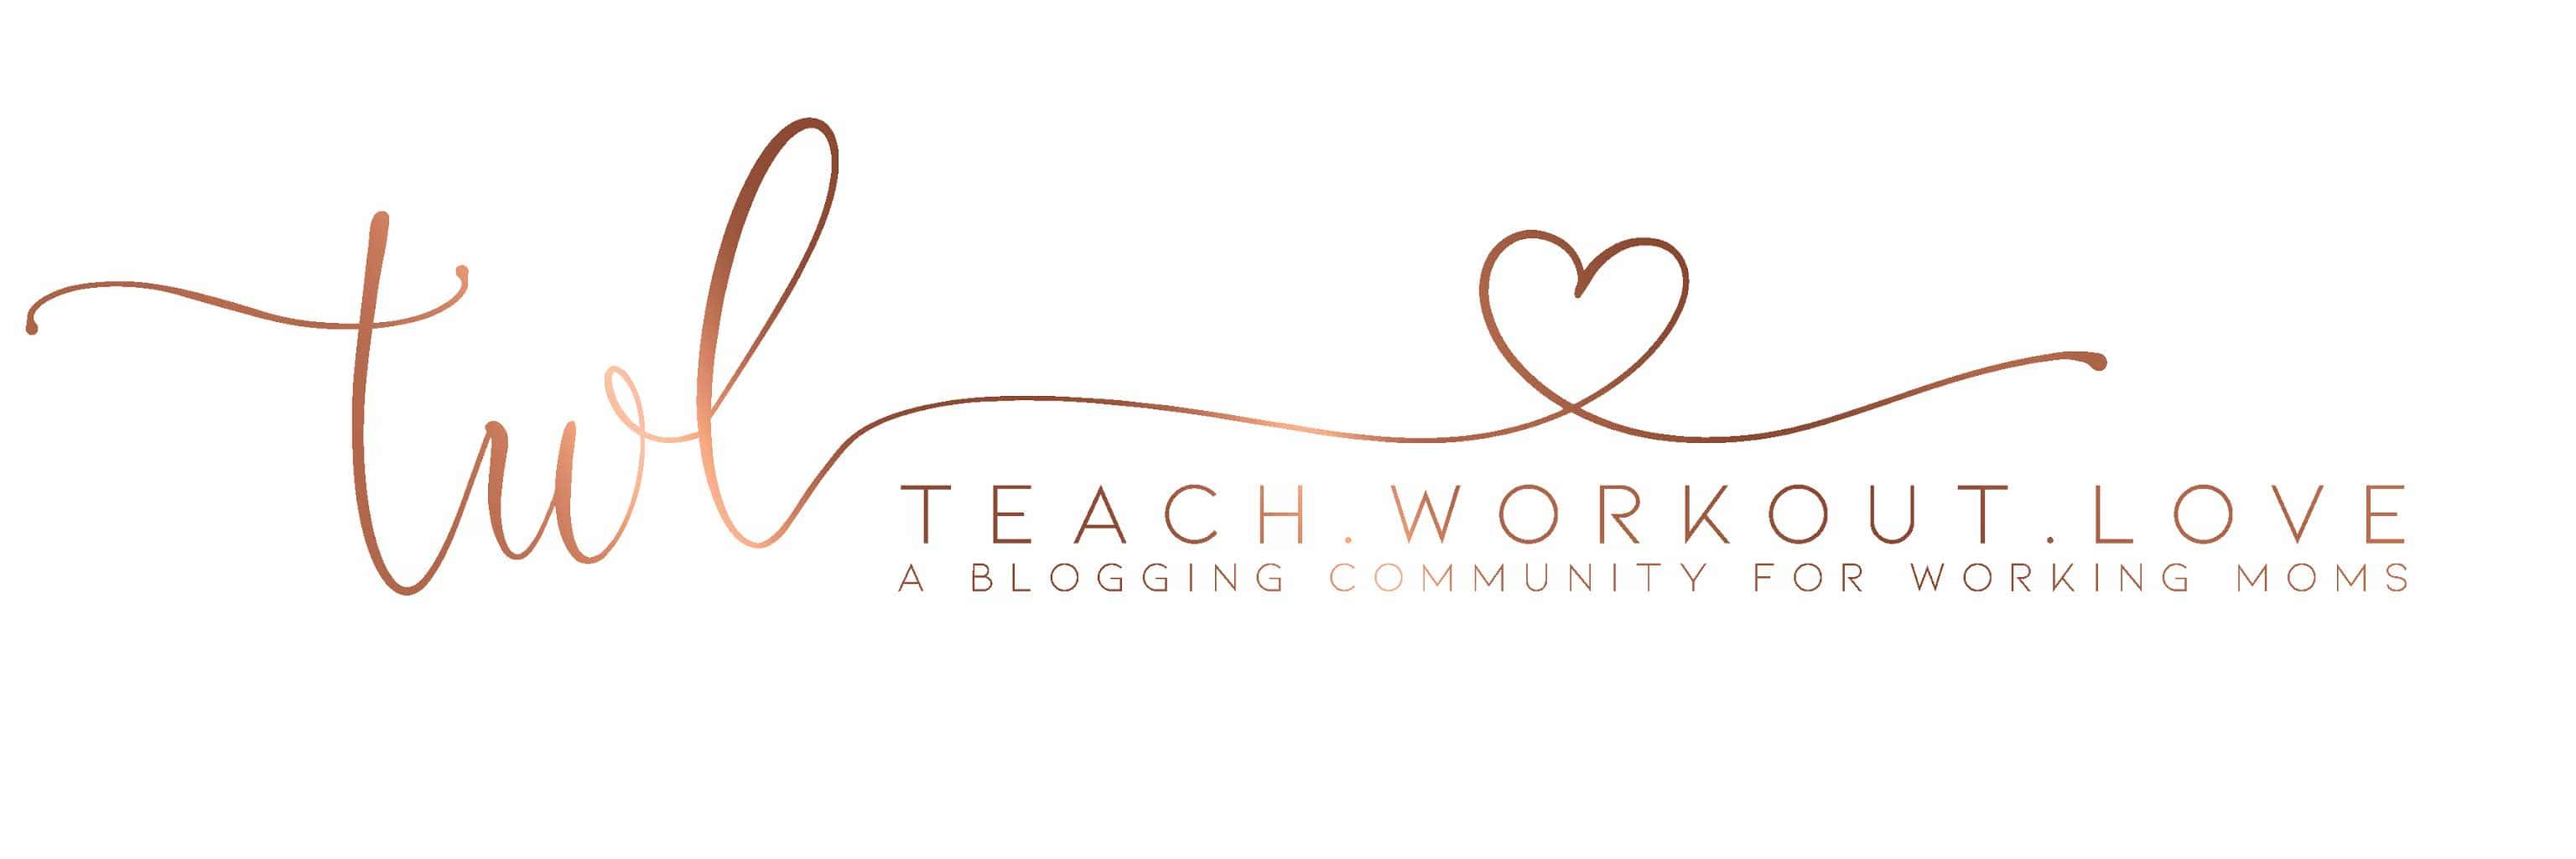 Teach.Workout.Love